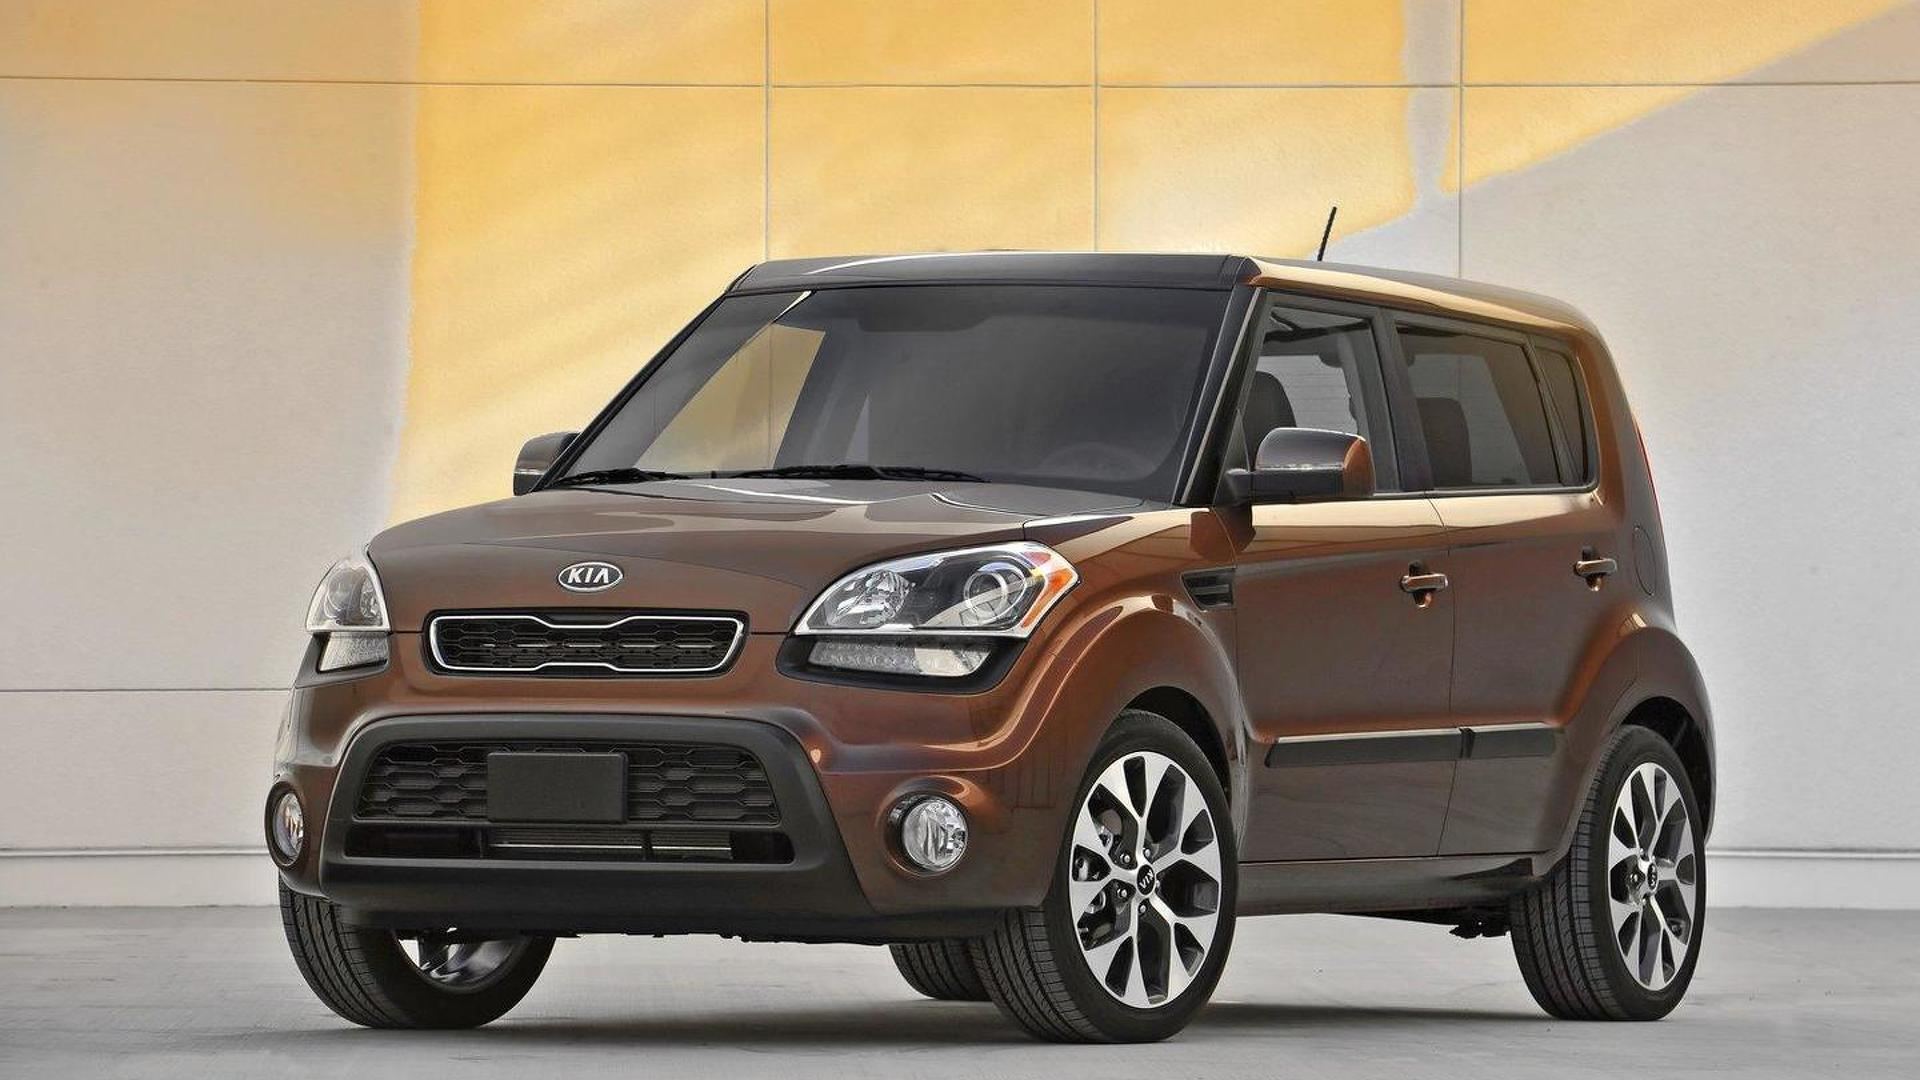 New Kia Soul coming next year - report